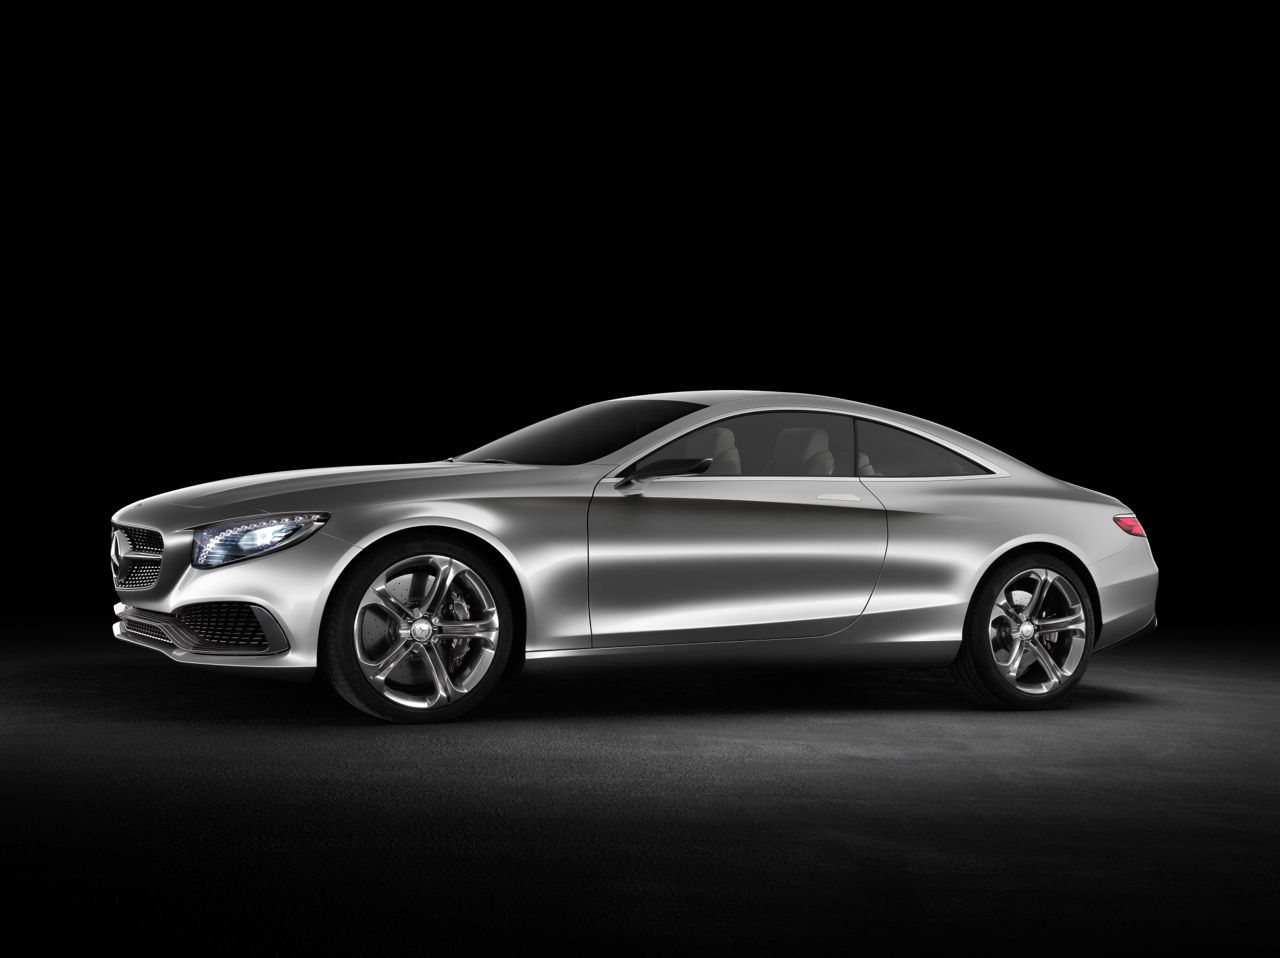 foto mercedes s klasse coupe concept mercedes s klasse coupe concept 013. Black Bedroom Furniture Sets. Home Design Ideas